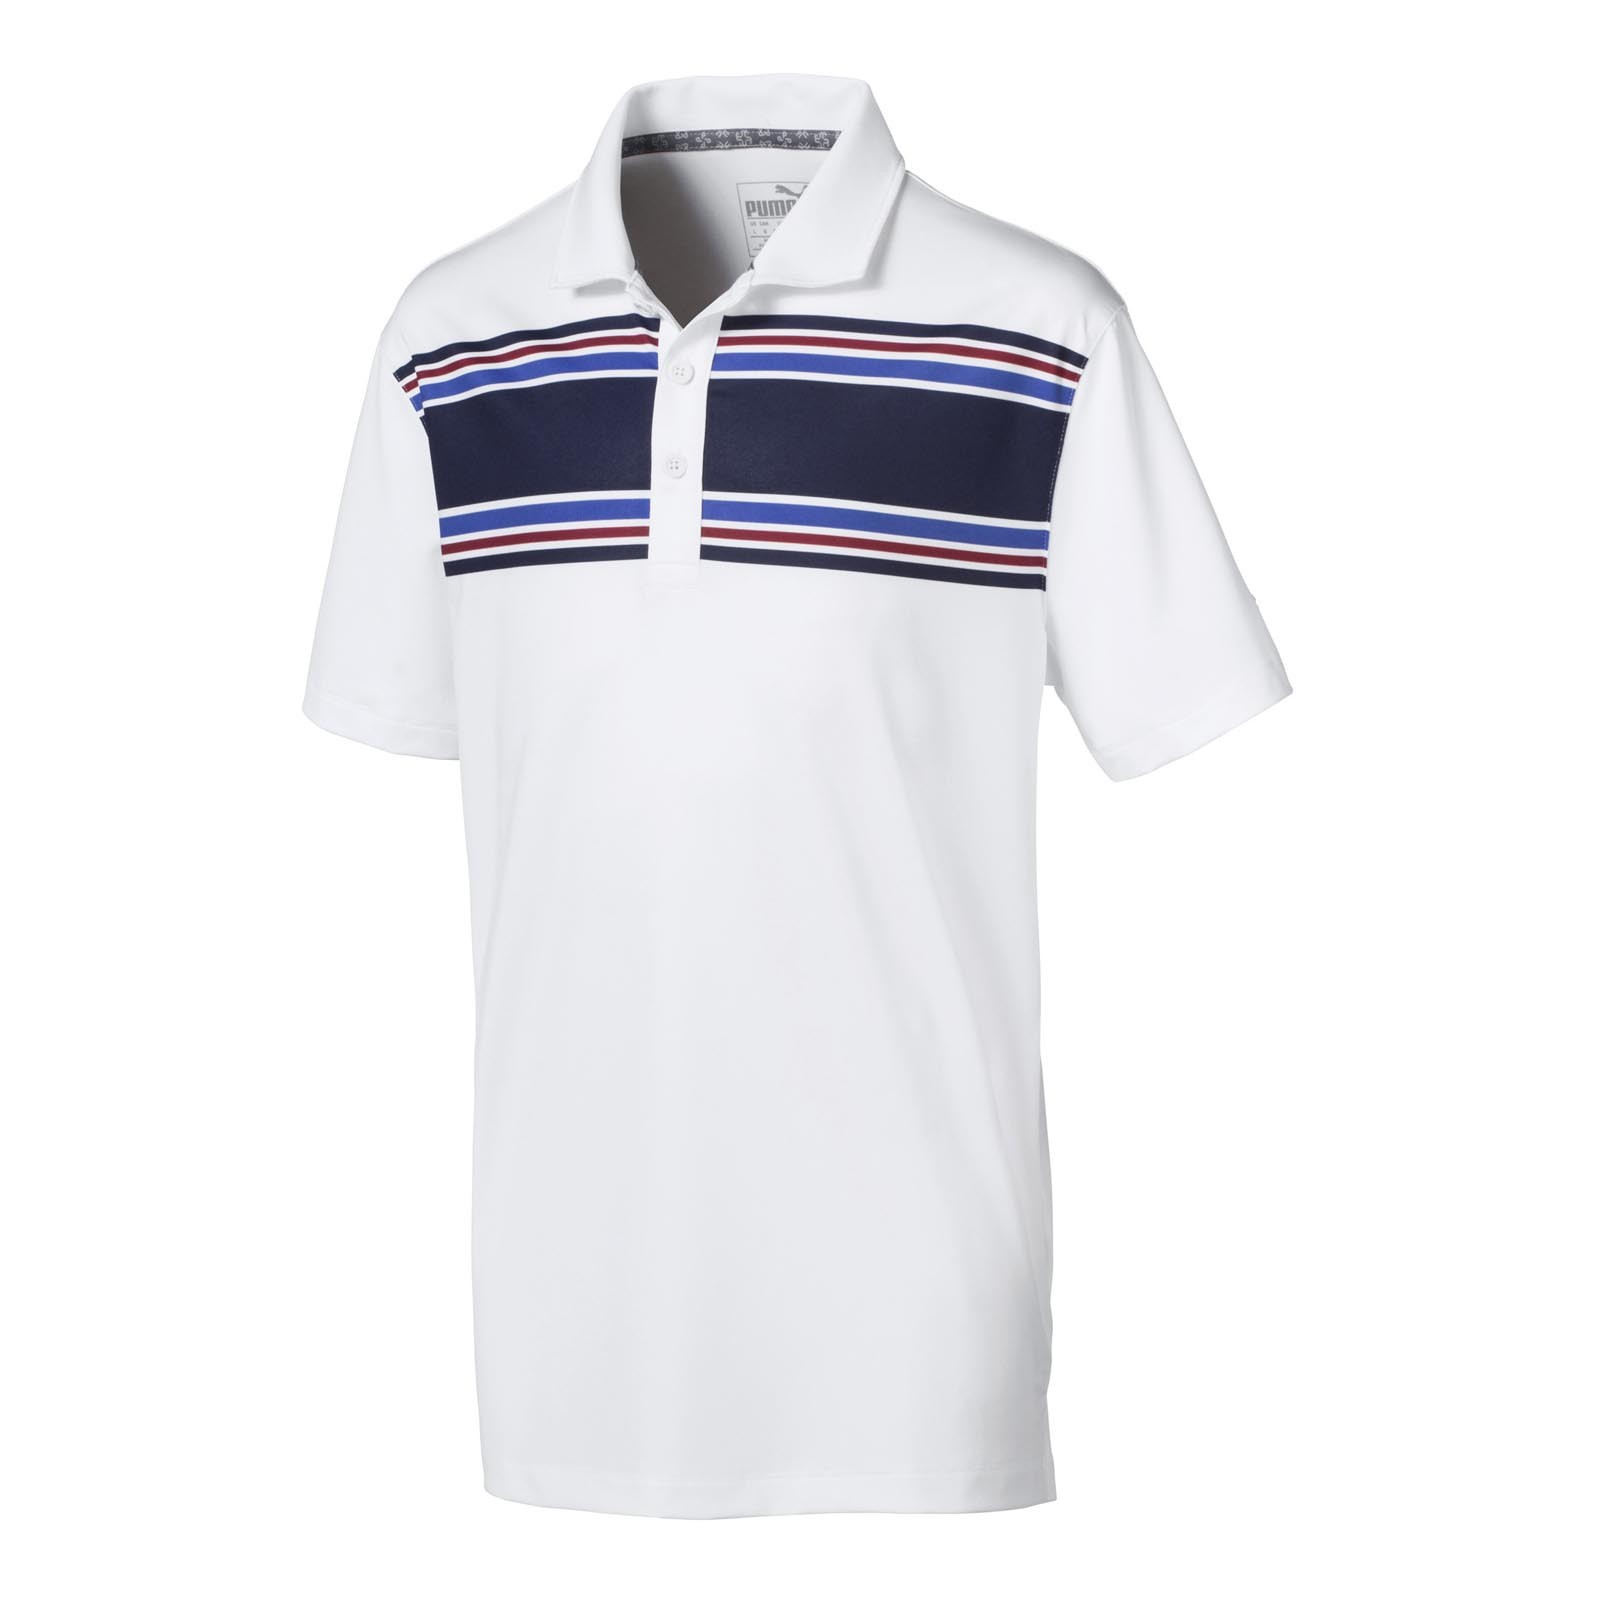 Puma Junior Montauk Polo